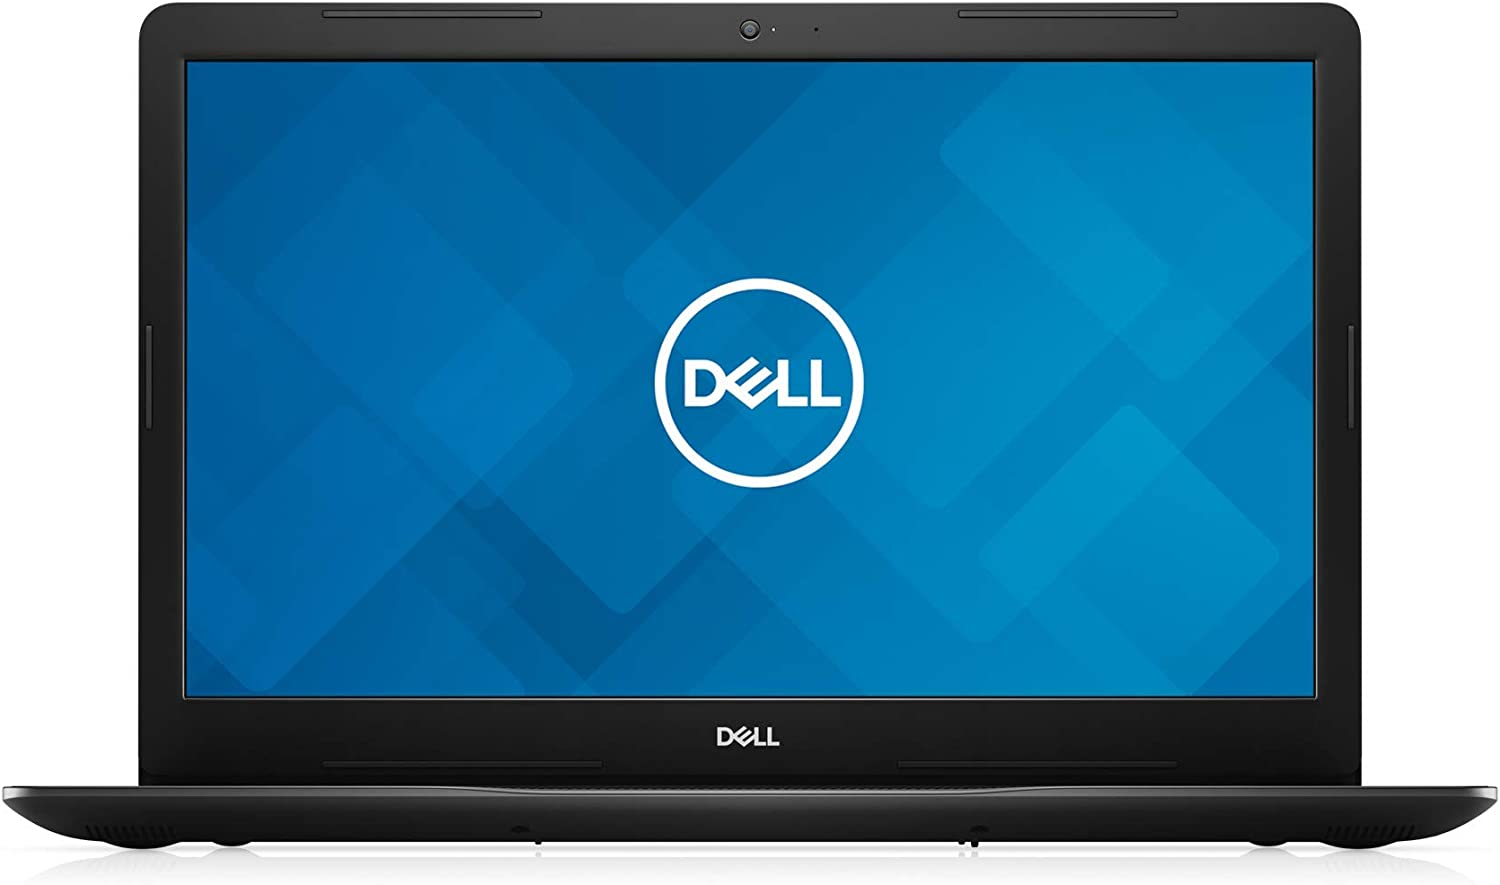 "Dell Inspiron 17"" i3780-7349BLK-PUS, i7-8565U up to 4.6 GHz, 8GB, 1x8GB, DDR4, 2400MHz,2TB 5400 RPM 2.5"" SATA Hard Drive,W10 Home 64,UHD Graphics 620 Shared (Renewed)"